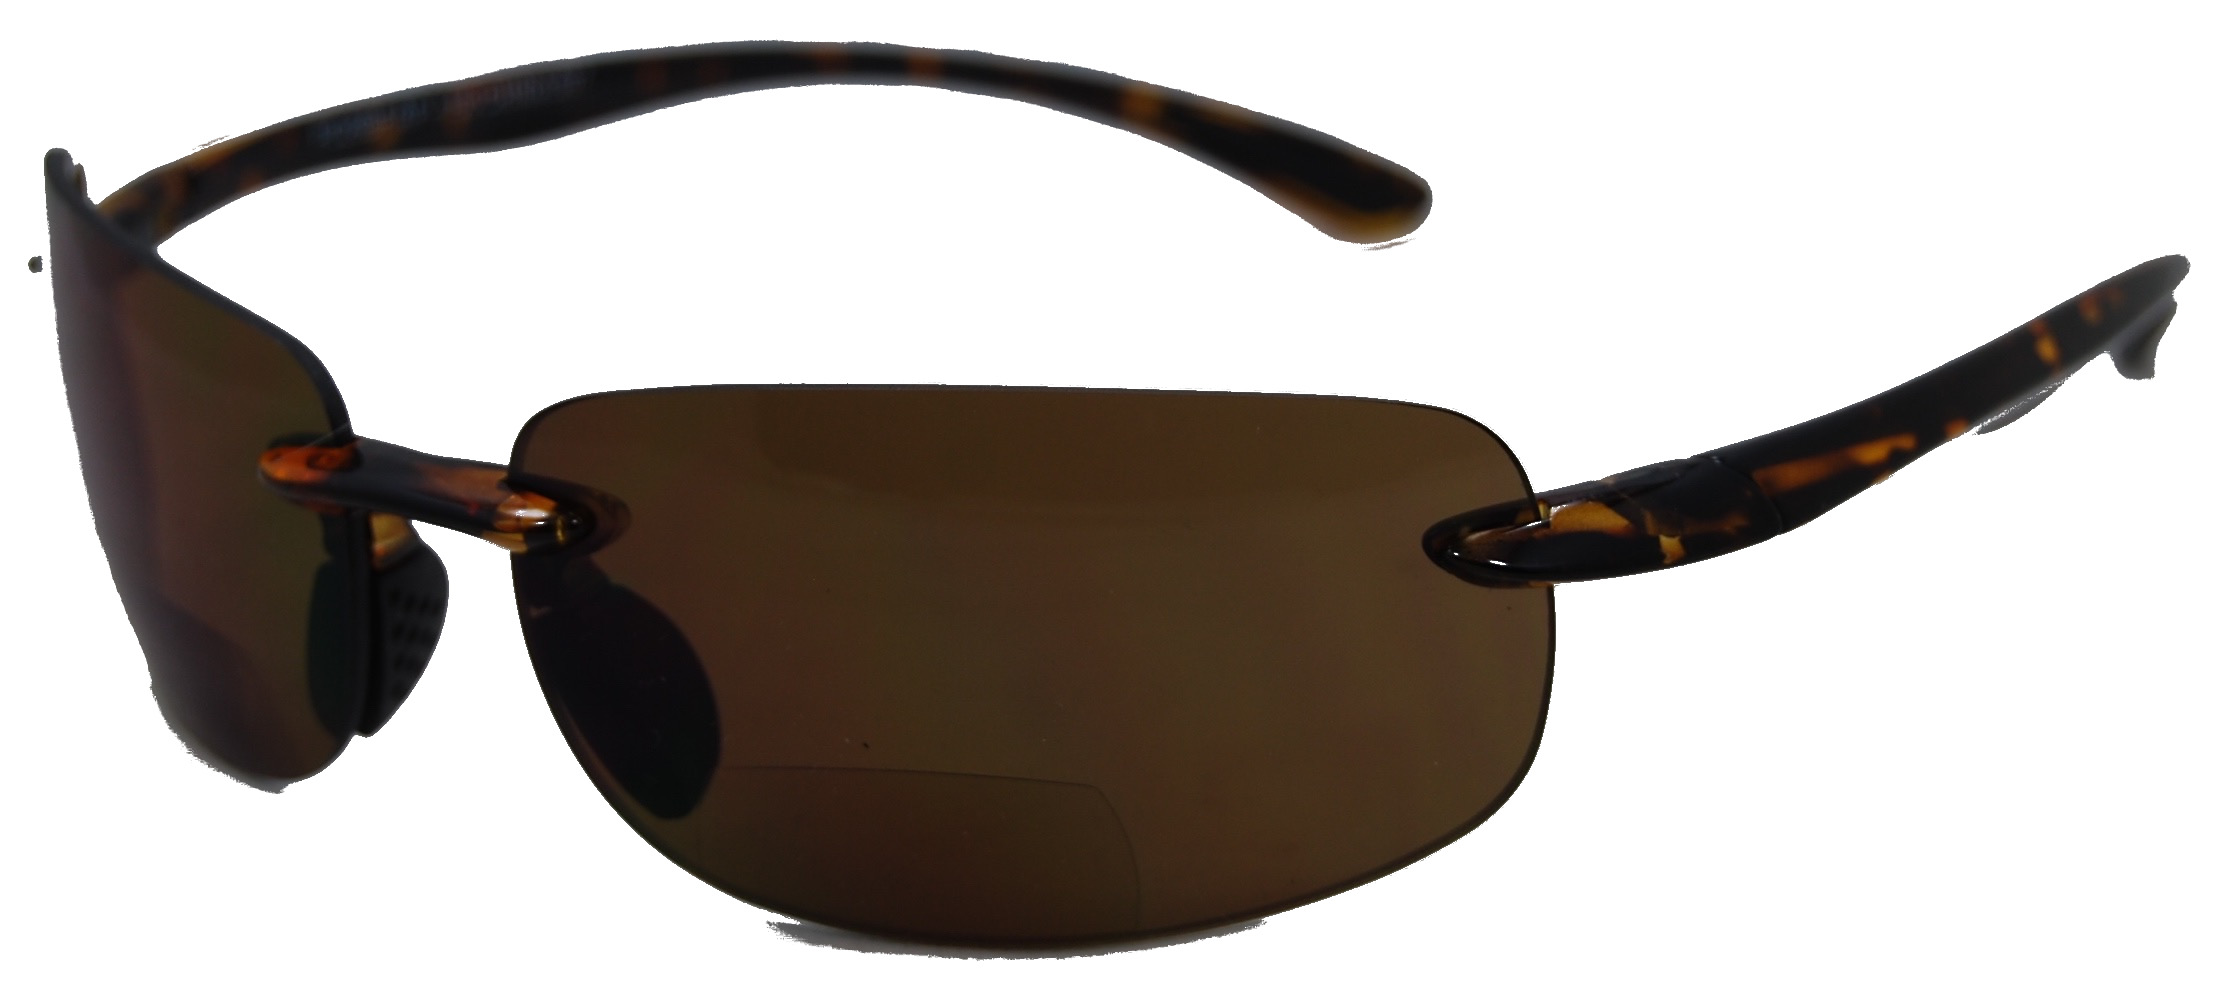 0a0f7121c6 In Style Eyes Lovin Maui Wrap Around Non-Polarized Version Bifocal  Sunglasses